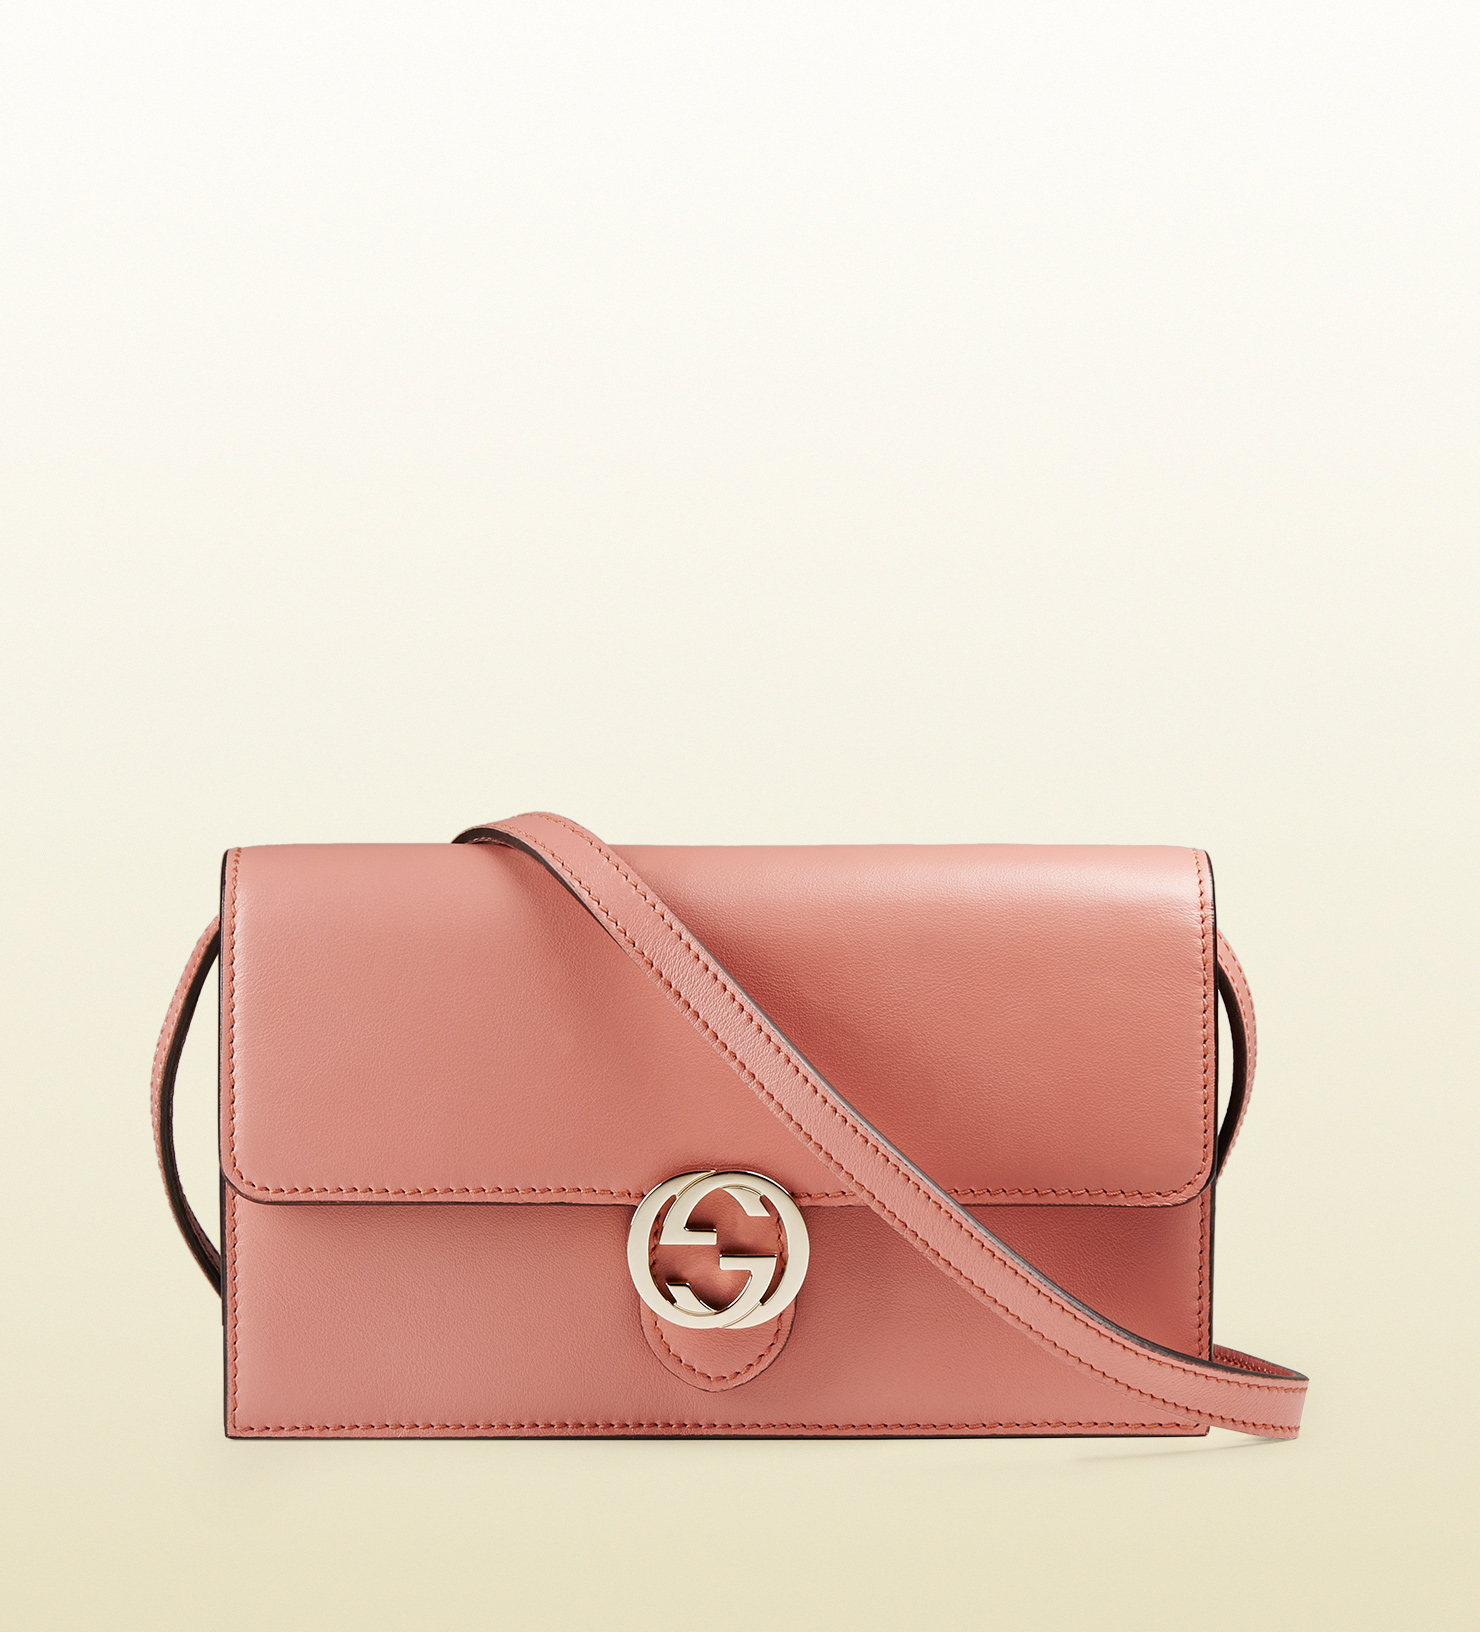 7a1d8fc15f5 Gucci Icon Leather Wallet With Strap in Pink - Lyst